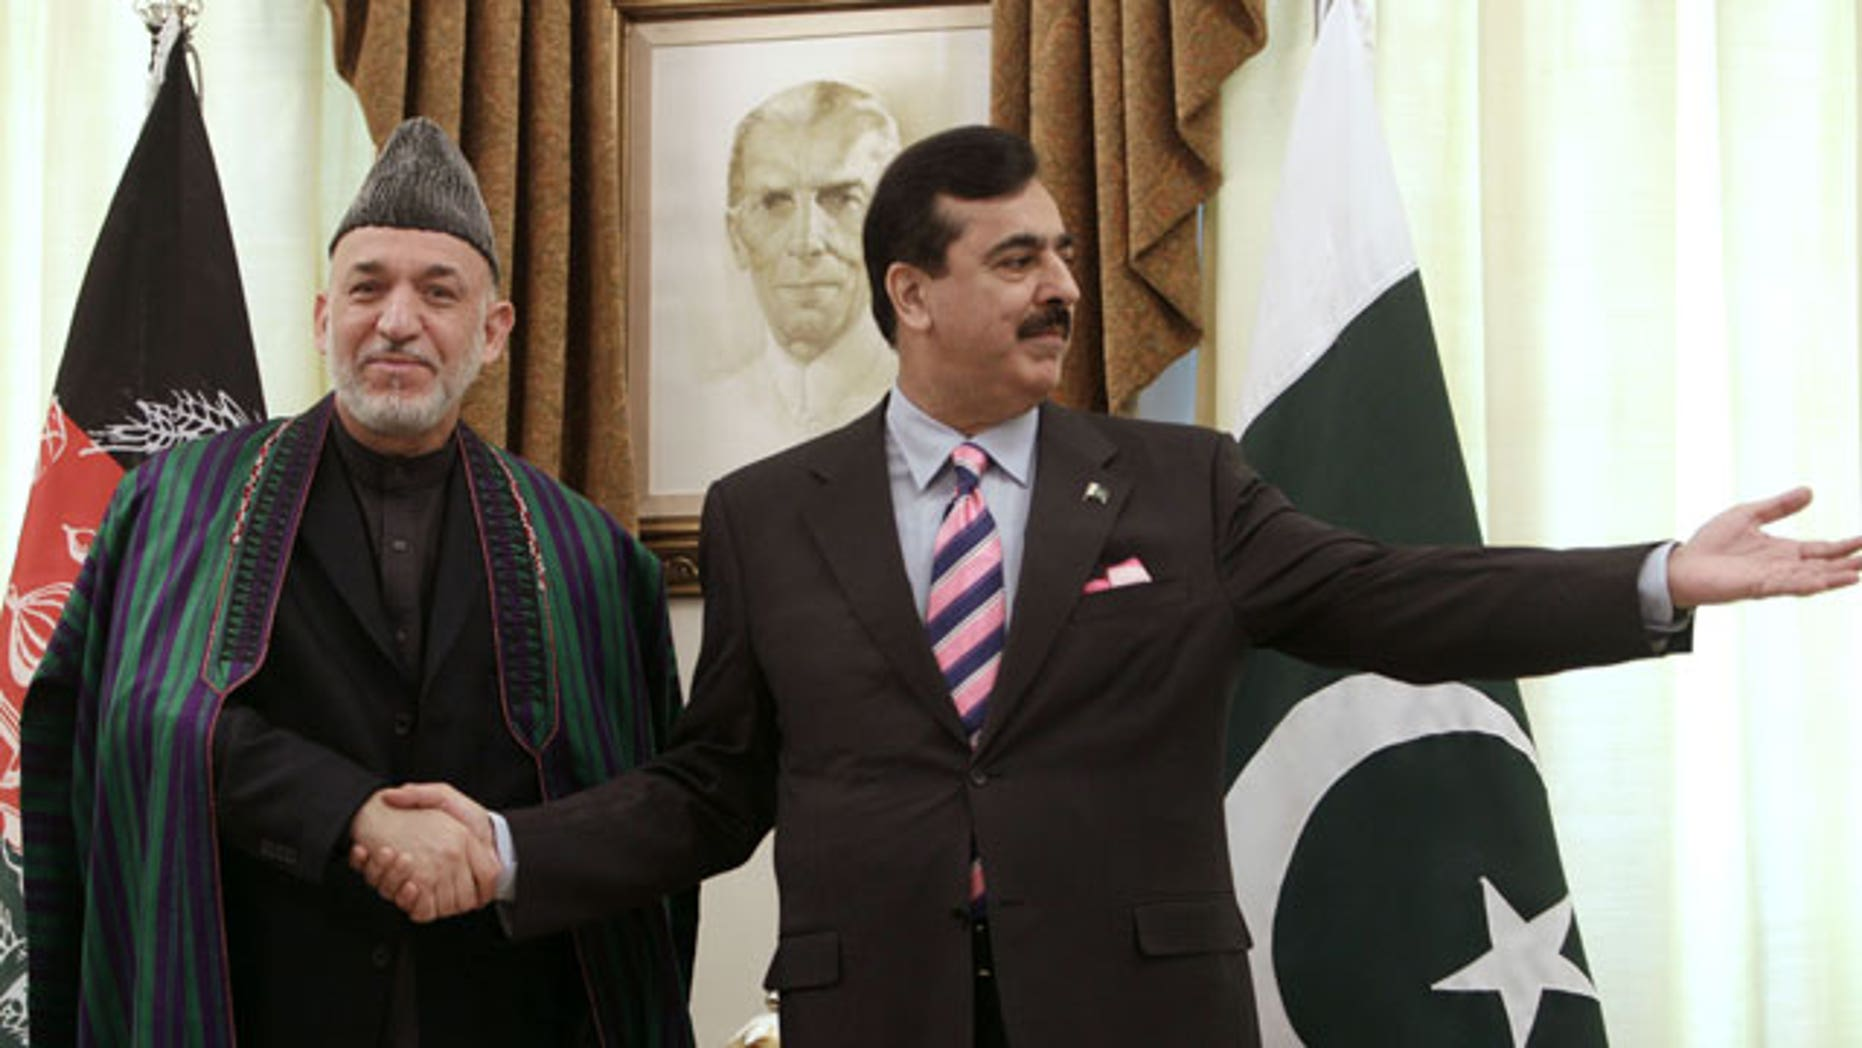 Feb. 16, 2012: Pakistan's Prime Minister Yousaf Raza Gilani, right, invites visiting Afghan President Hamid Karzai for talks upon his arrival at Prime Minister House in Islamabad, Pakistan.